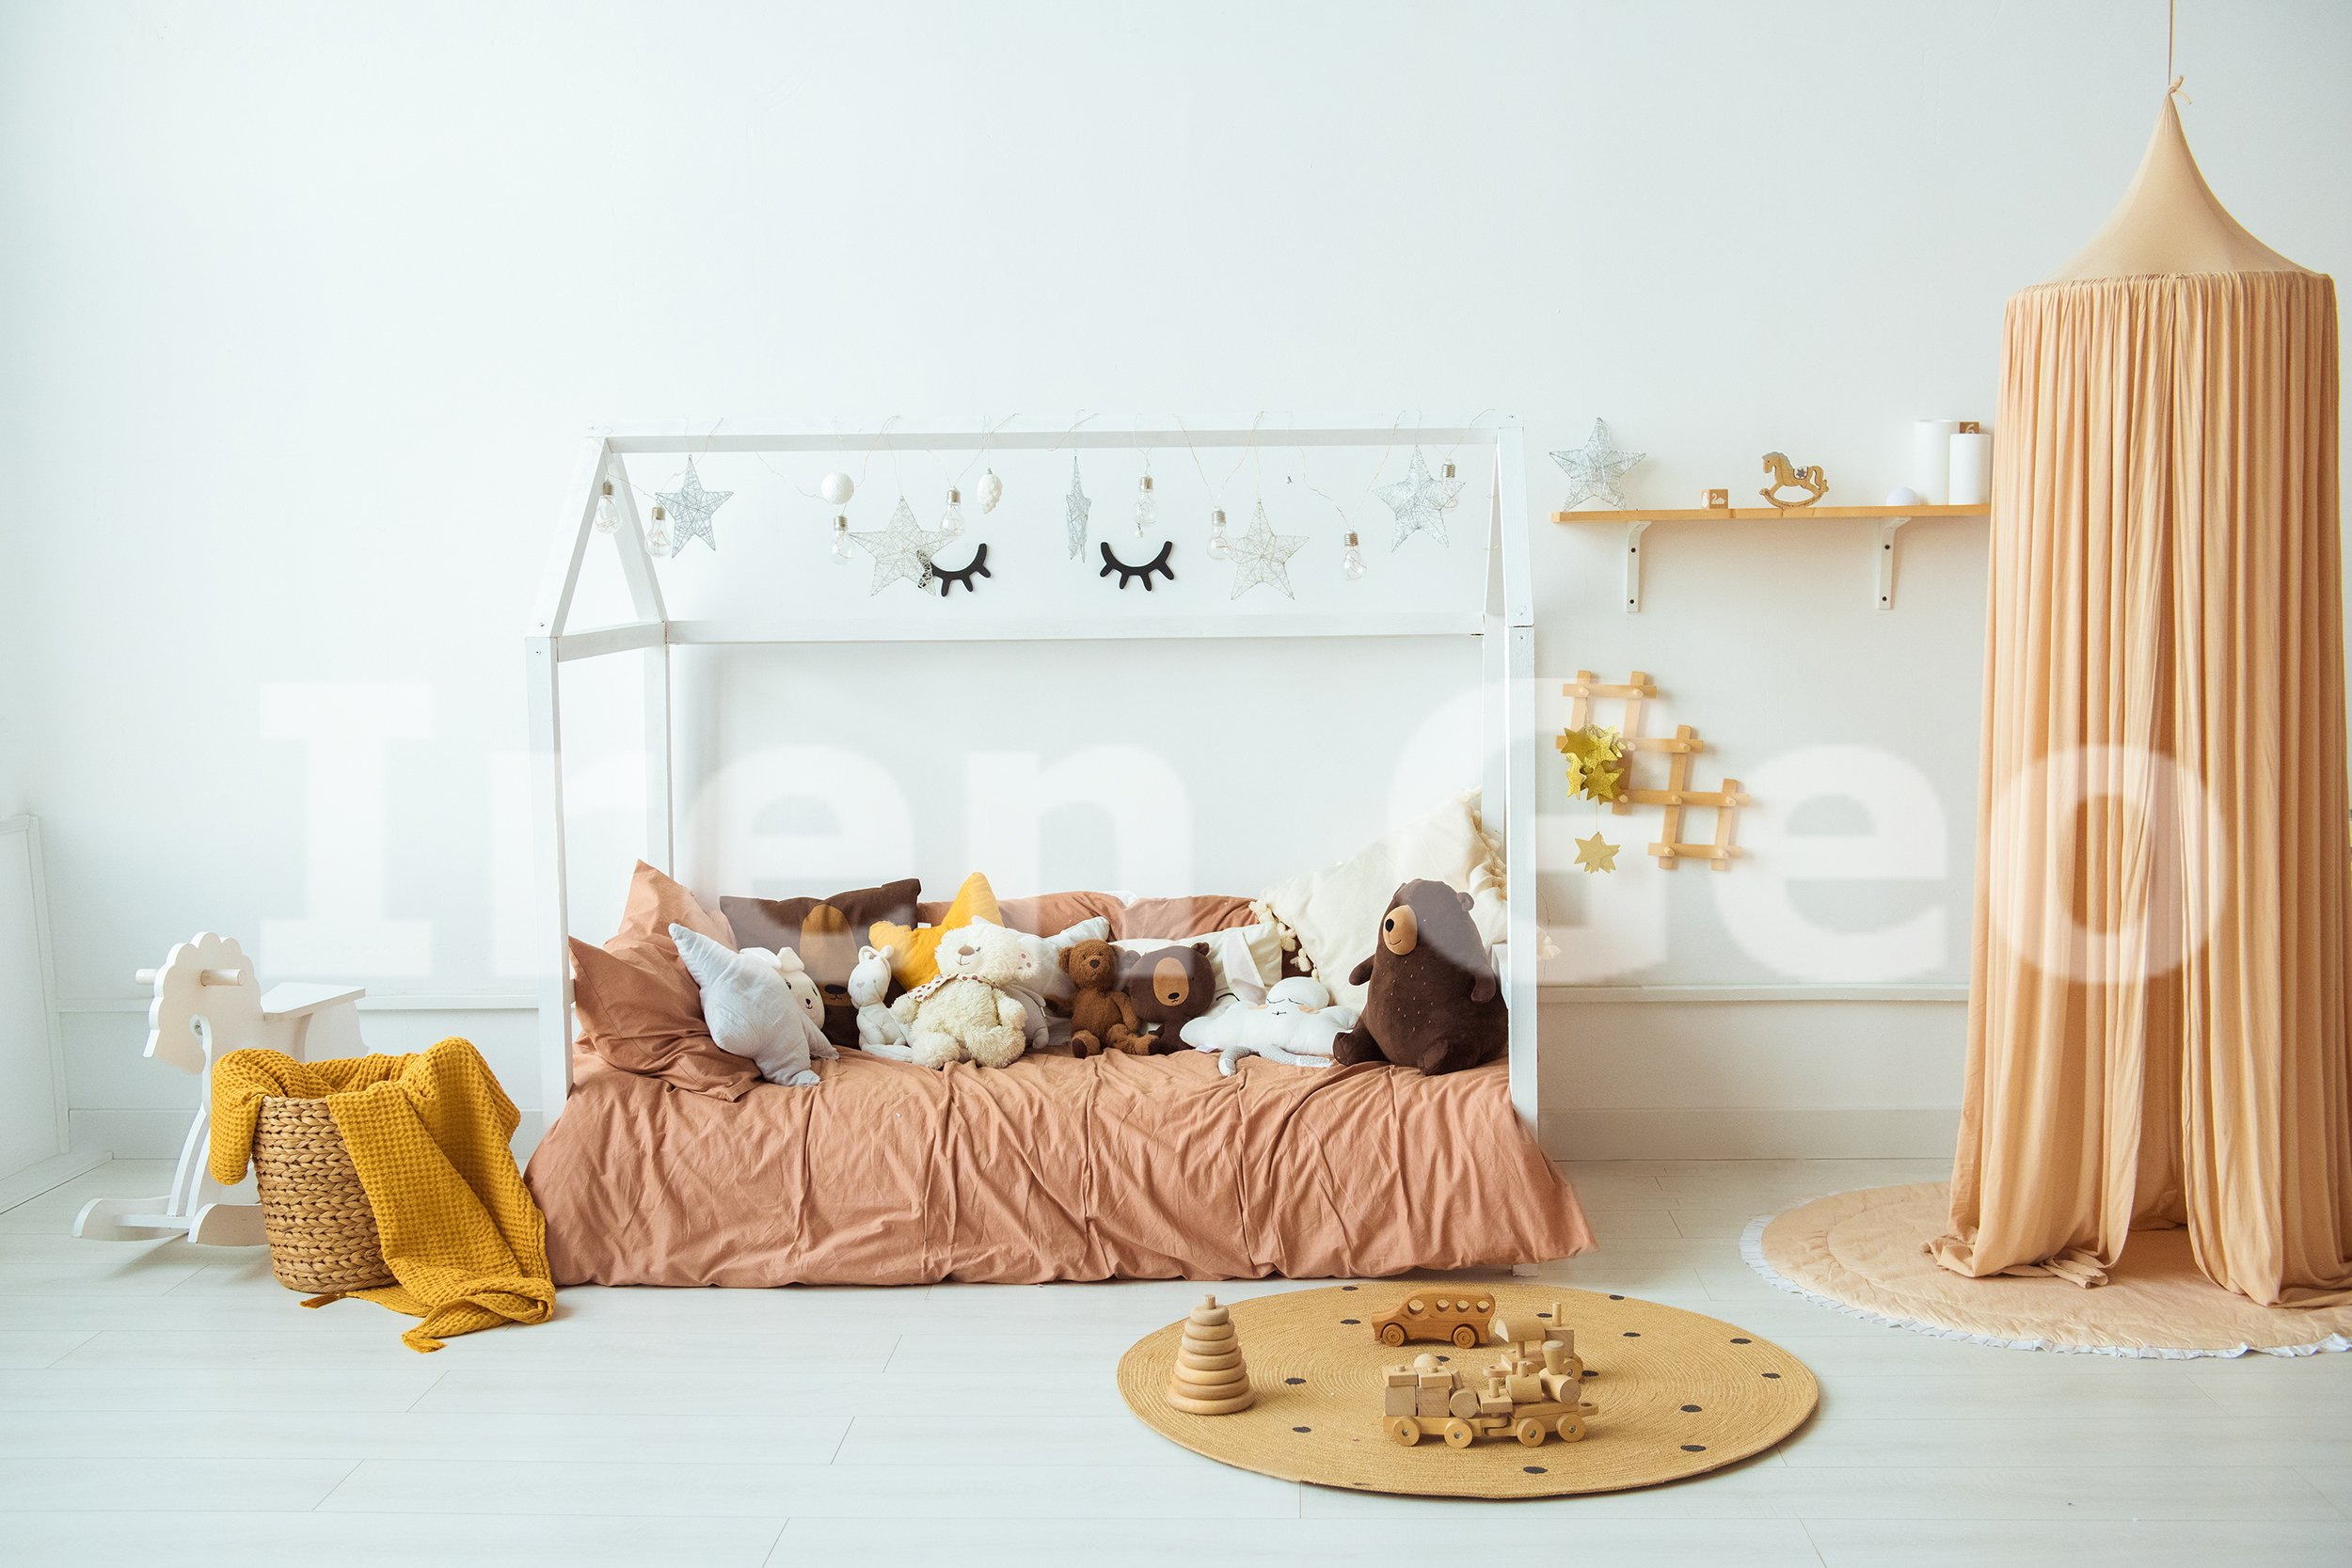 Interior of the children's room. Soft bed and lots of toys example image 1